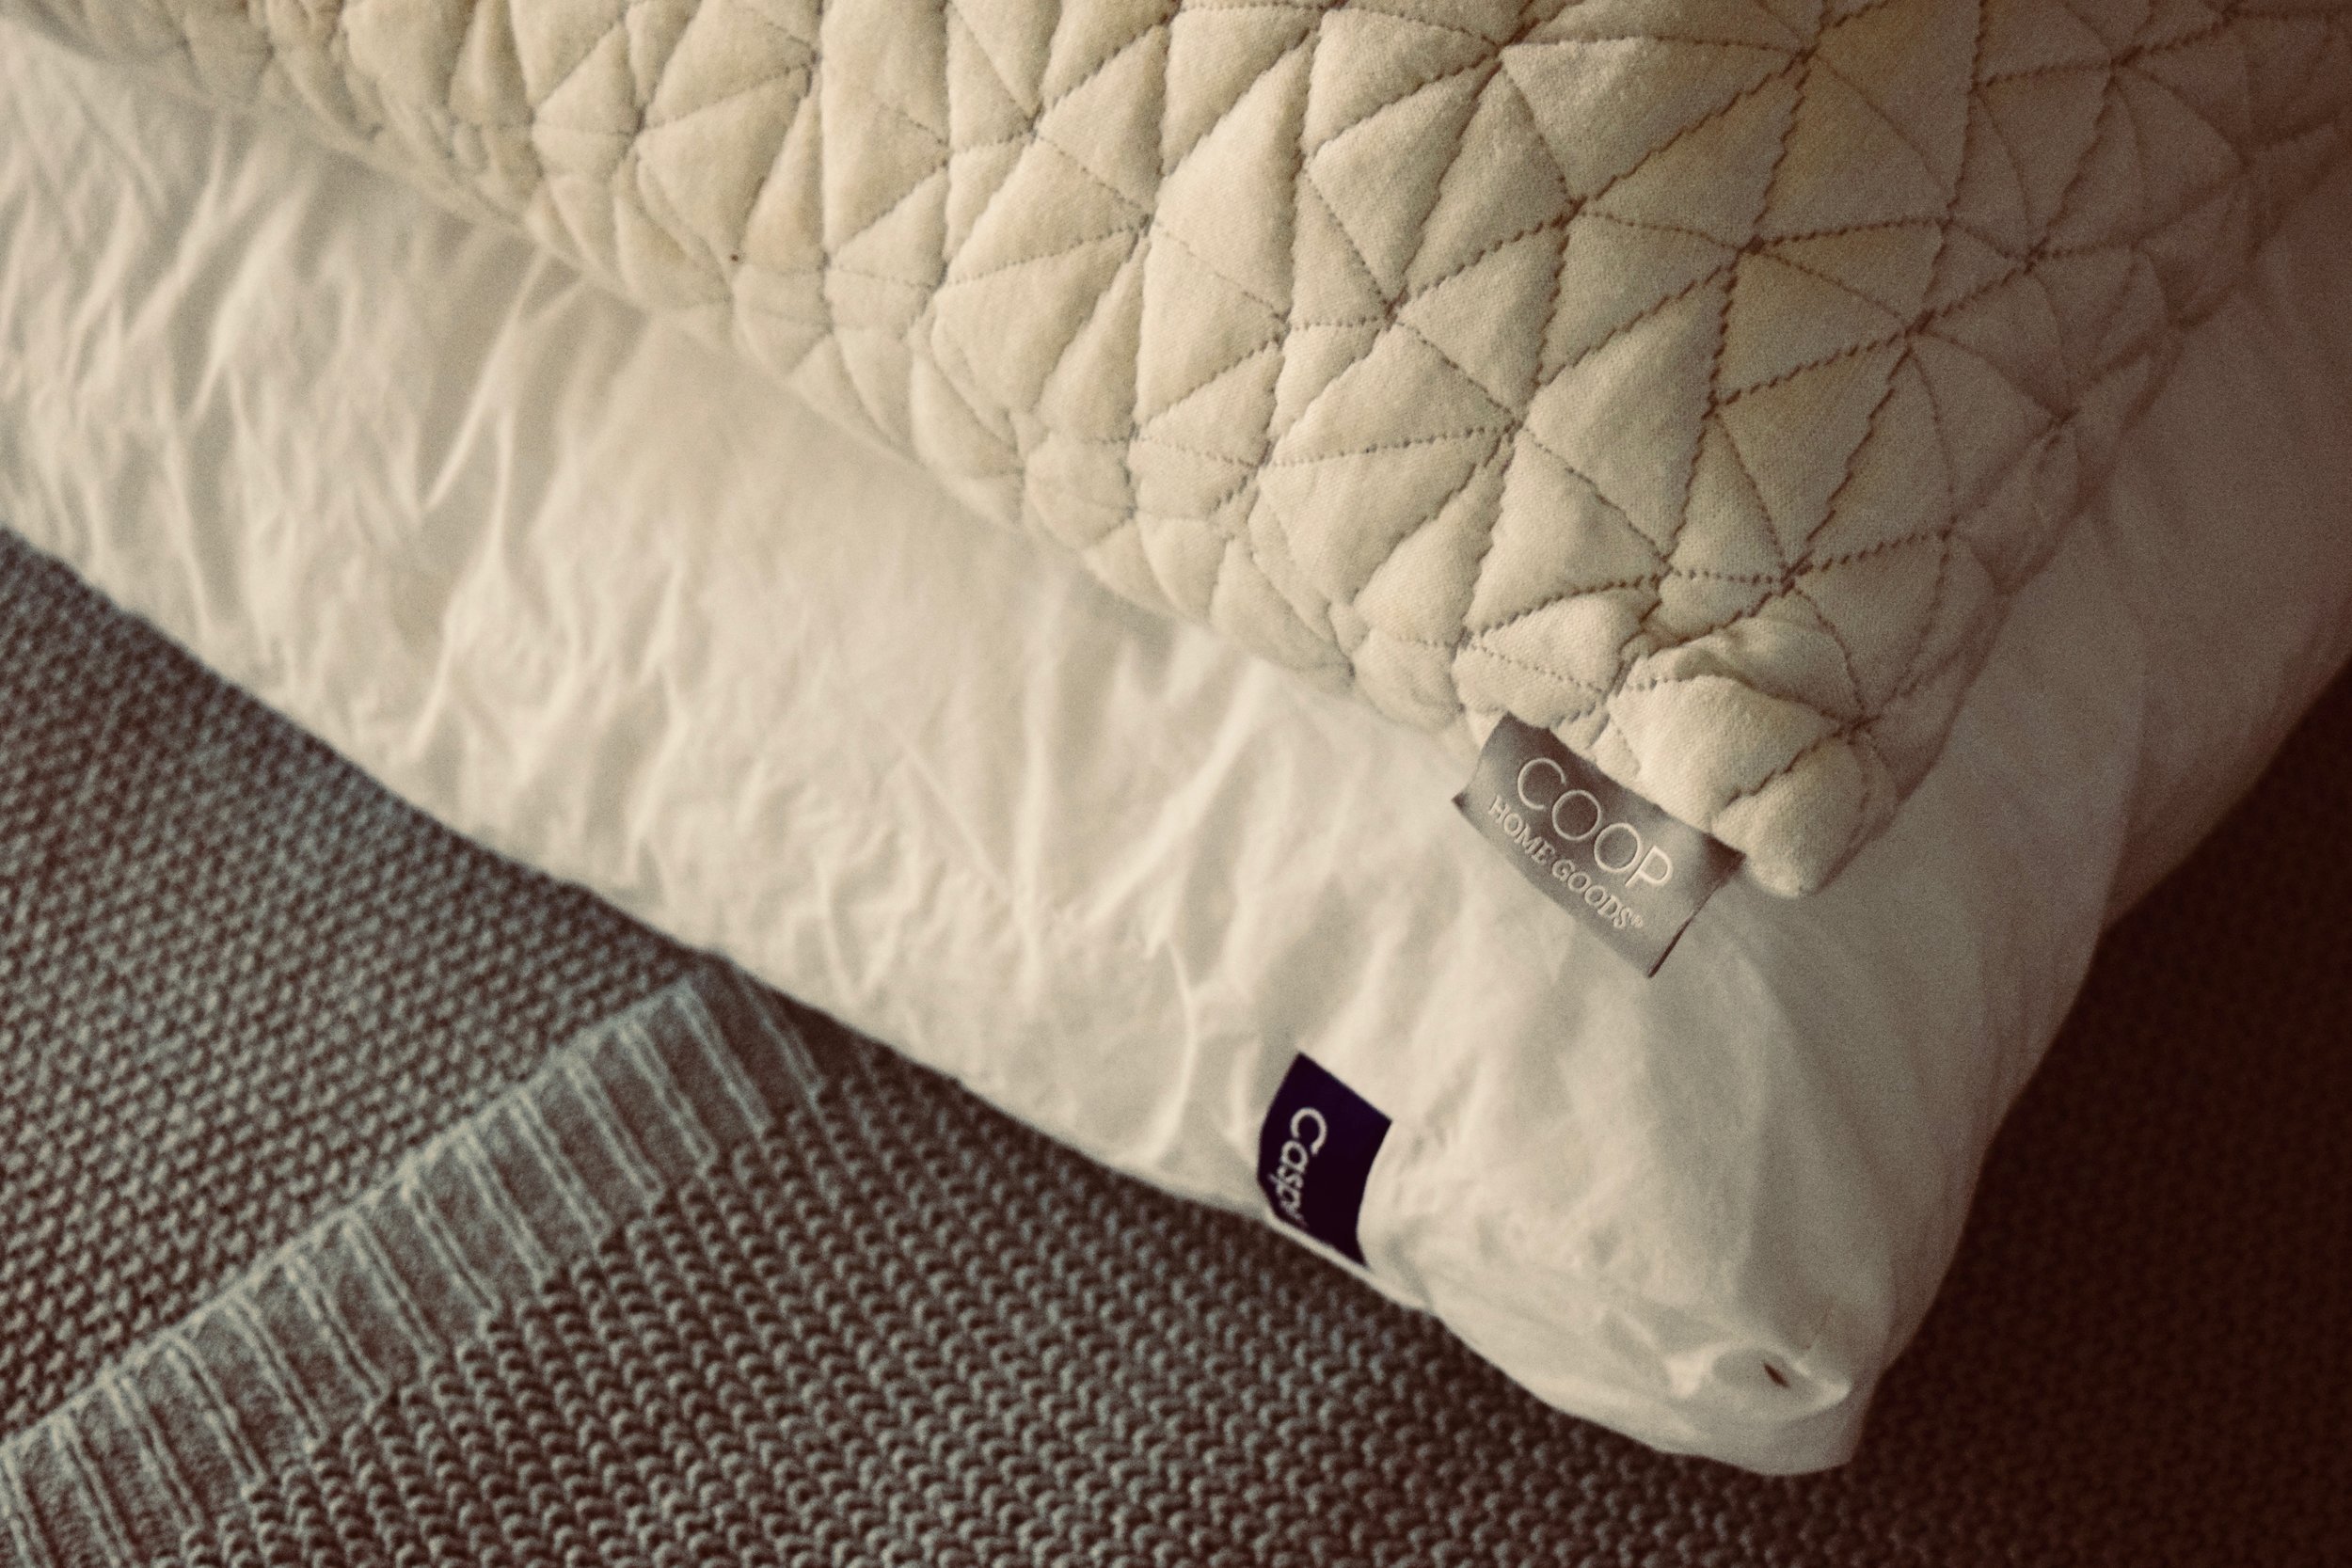 Need to get a better night's sleep? In this article you'll read a few tips you can use to get a more restful night's sleep. Pictured: Two pillows on top of one another, the Coop Pillow and the Casper Pillow